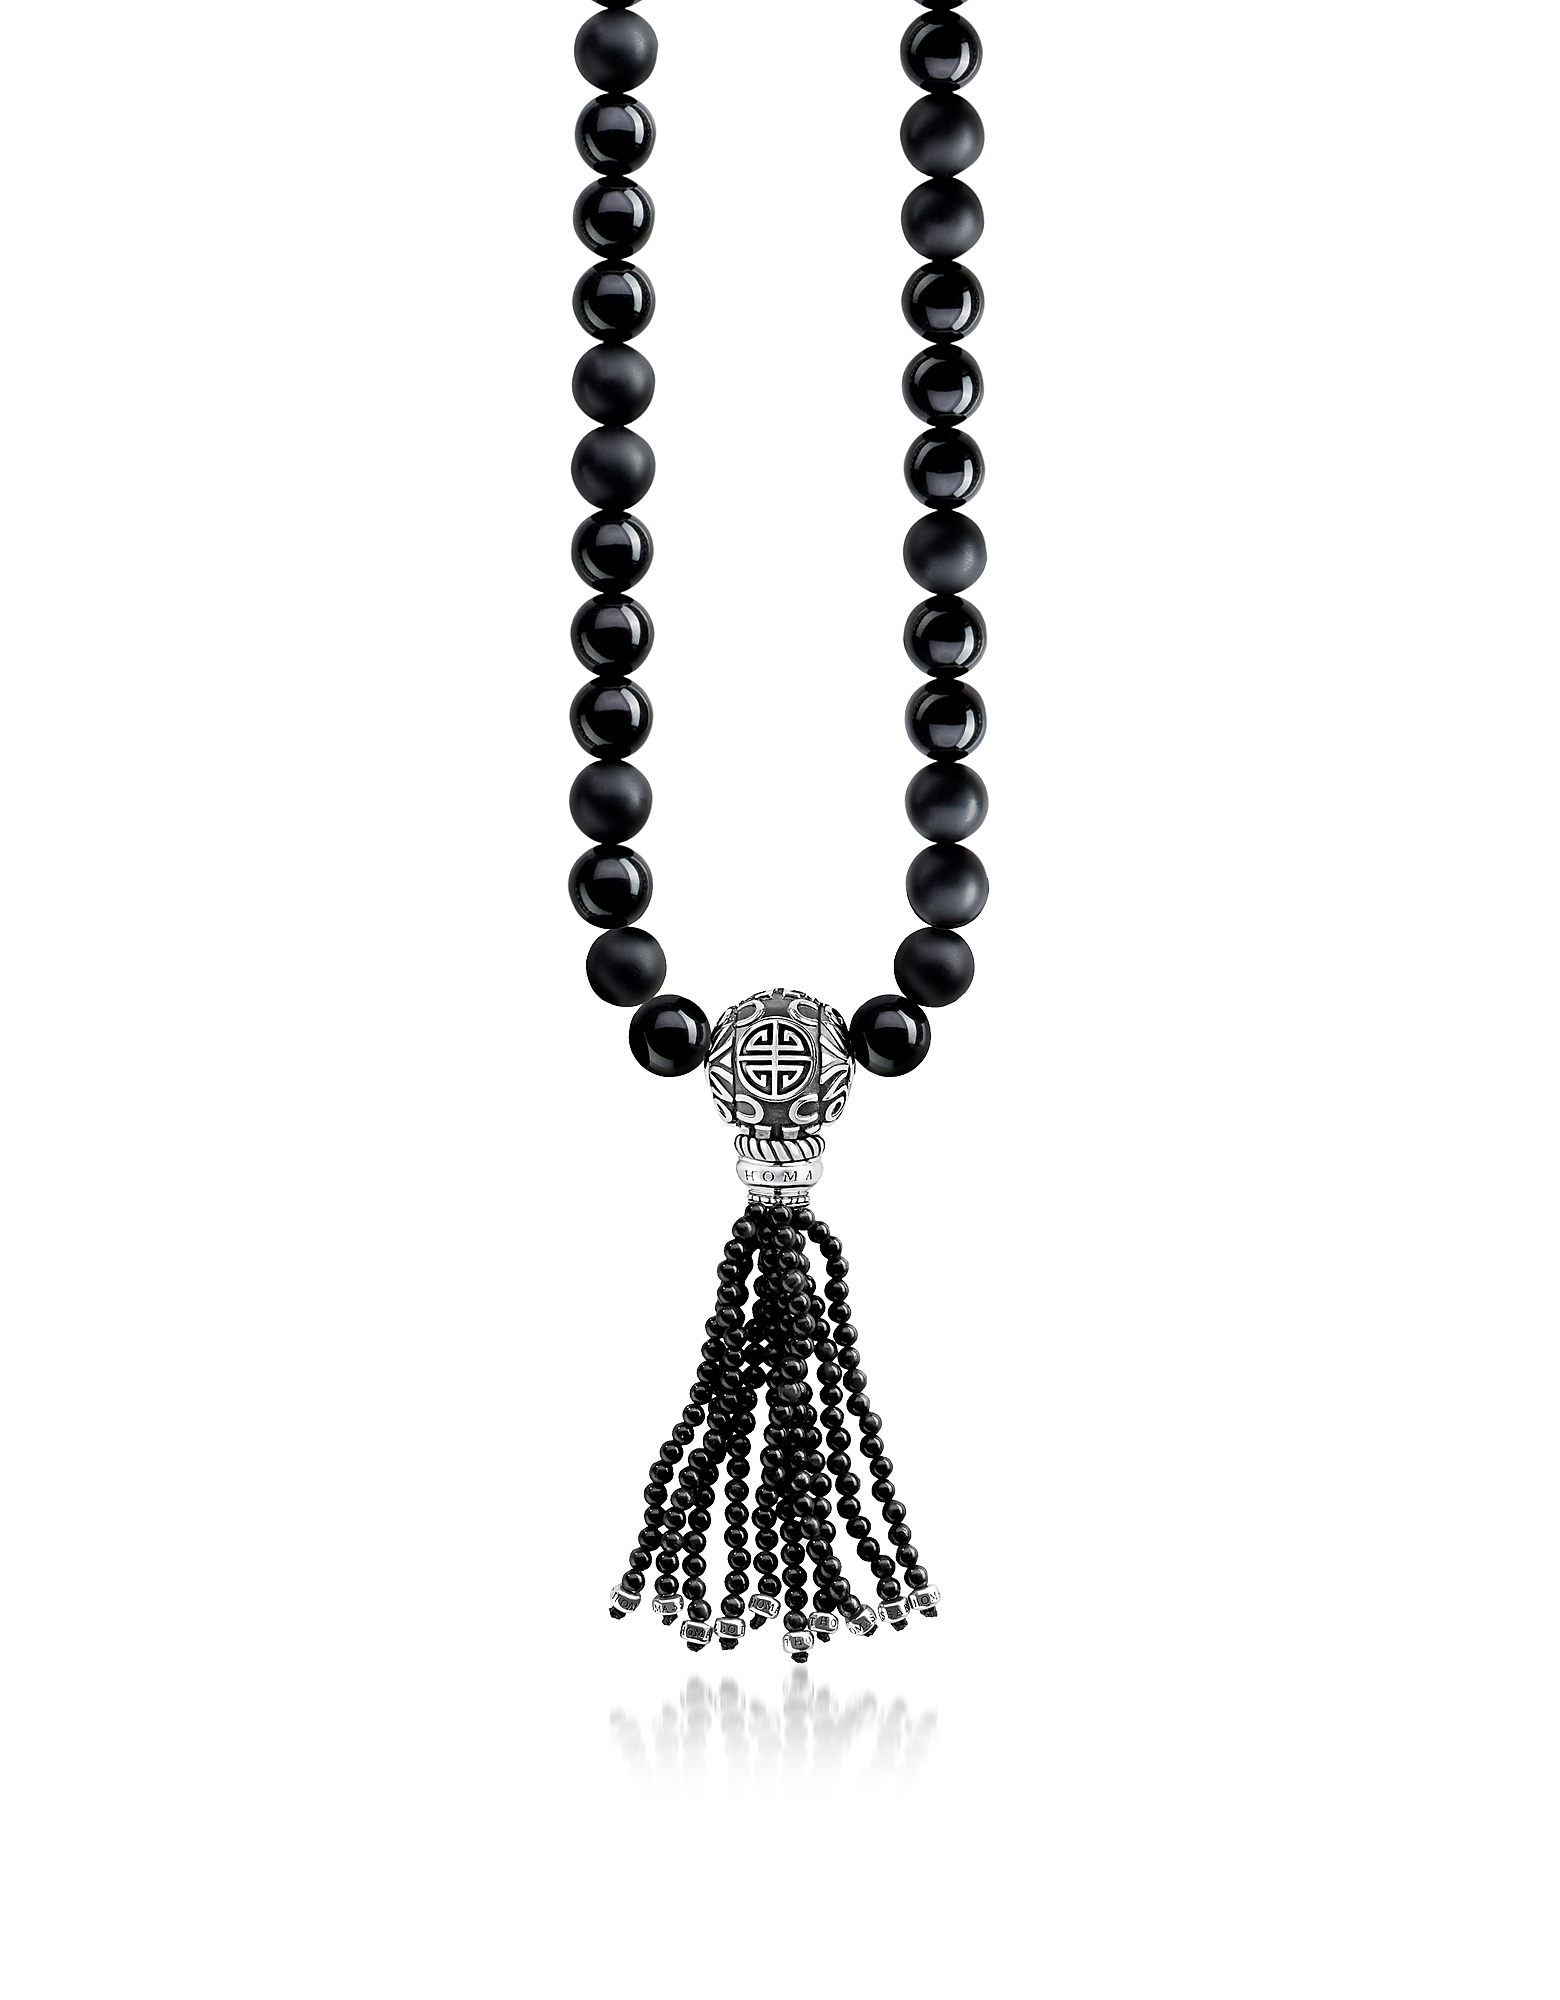 Power Necklace Black Sterling Silver Men's Long Necklace w/Obsidian Matt & Polished Beads and Tassel